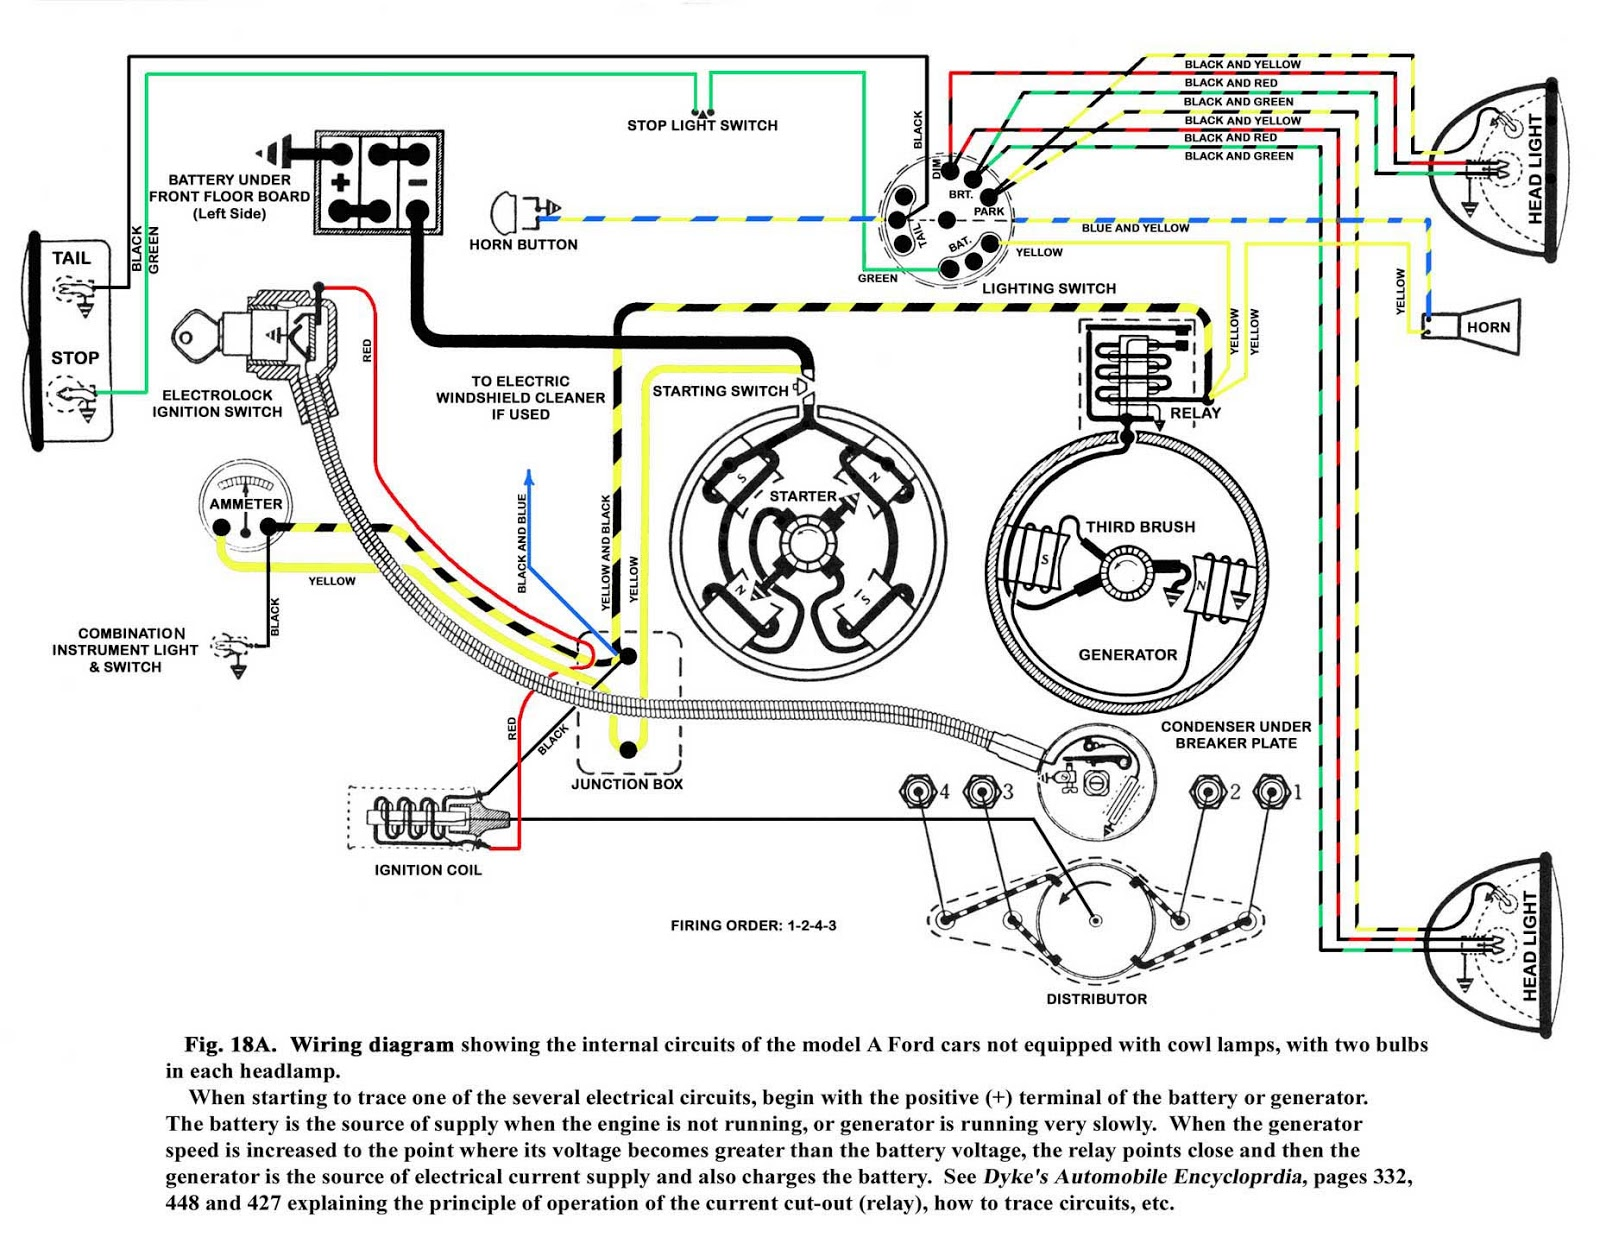 1928 ford model a wiring diagram the model a ford, henry and that era: ignition trouble ... ford model a electrical diagram